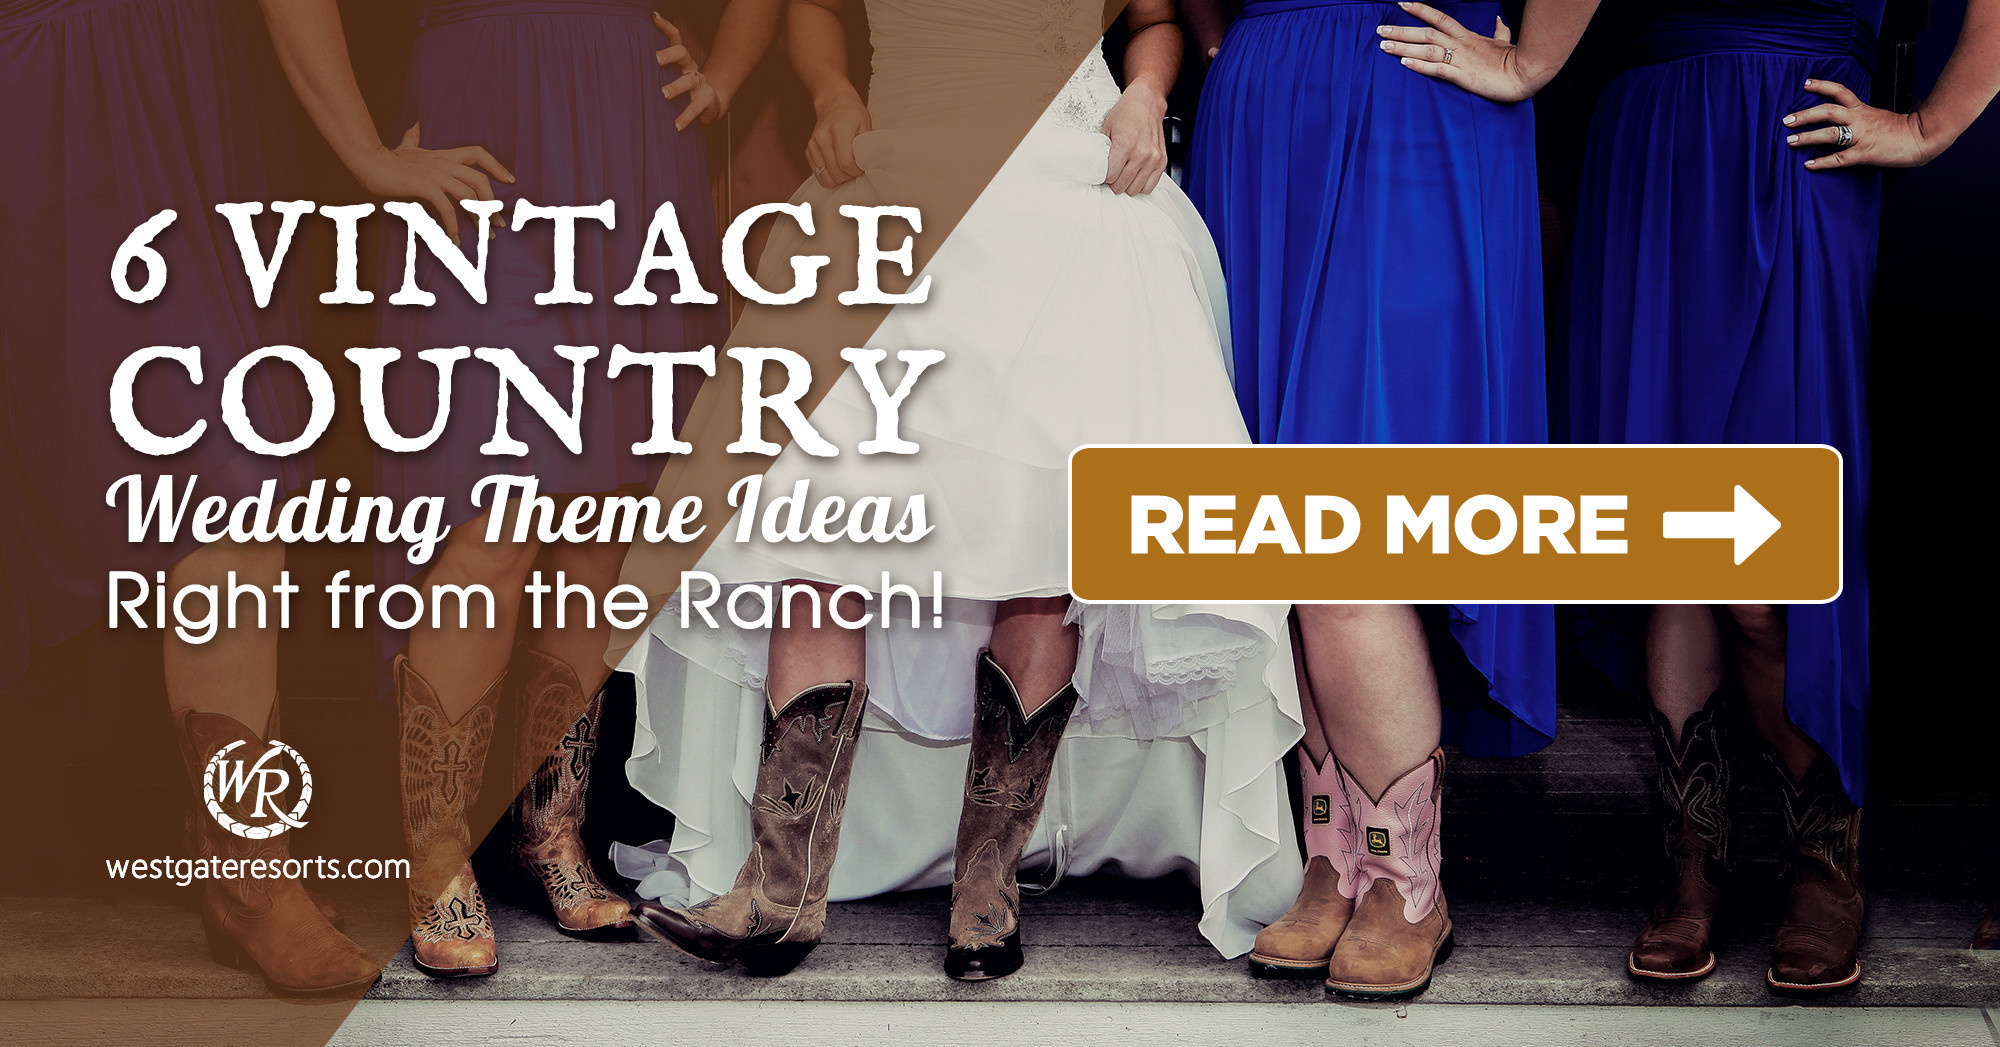 Bride Guide: 6 Vintage Country Wedding Theme Ideas Right From the Ranch! | Westgate River Ranch